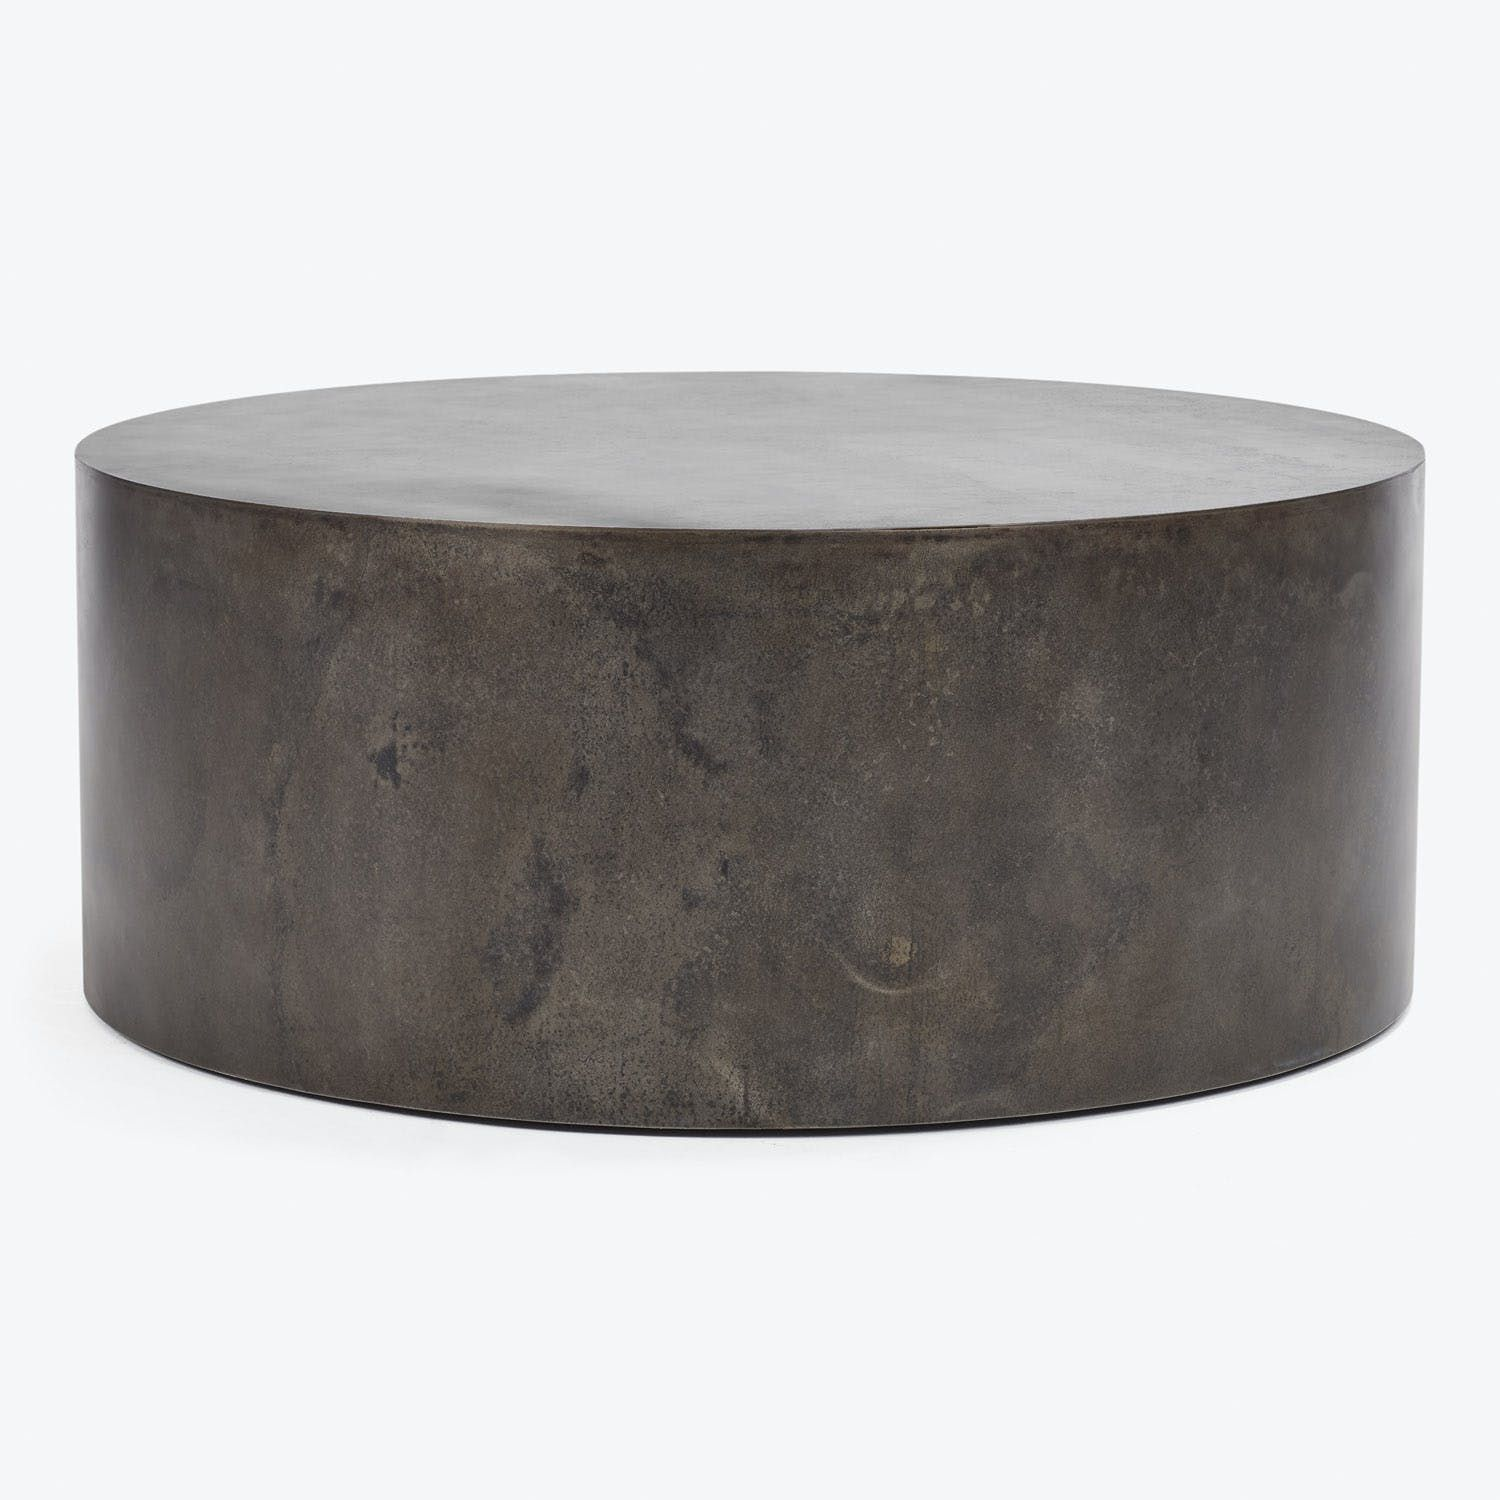 A Stunning Display In Contemporary Design This Rounded Coffee Table Is Handmade From Met Round Metal Coffee Table Round Coffee Table Modern Metal Coffee Table [ 1500 x 1500 Pixel ]